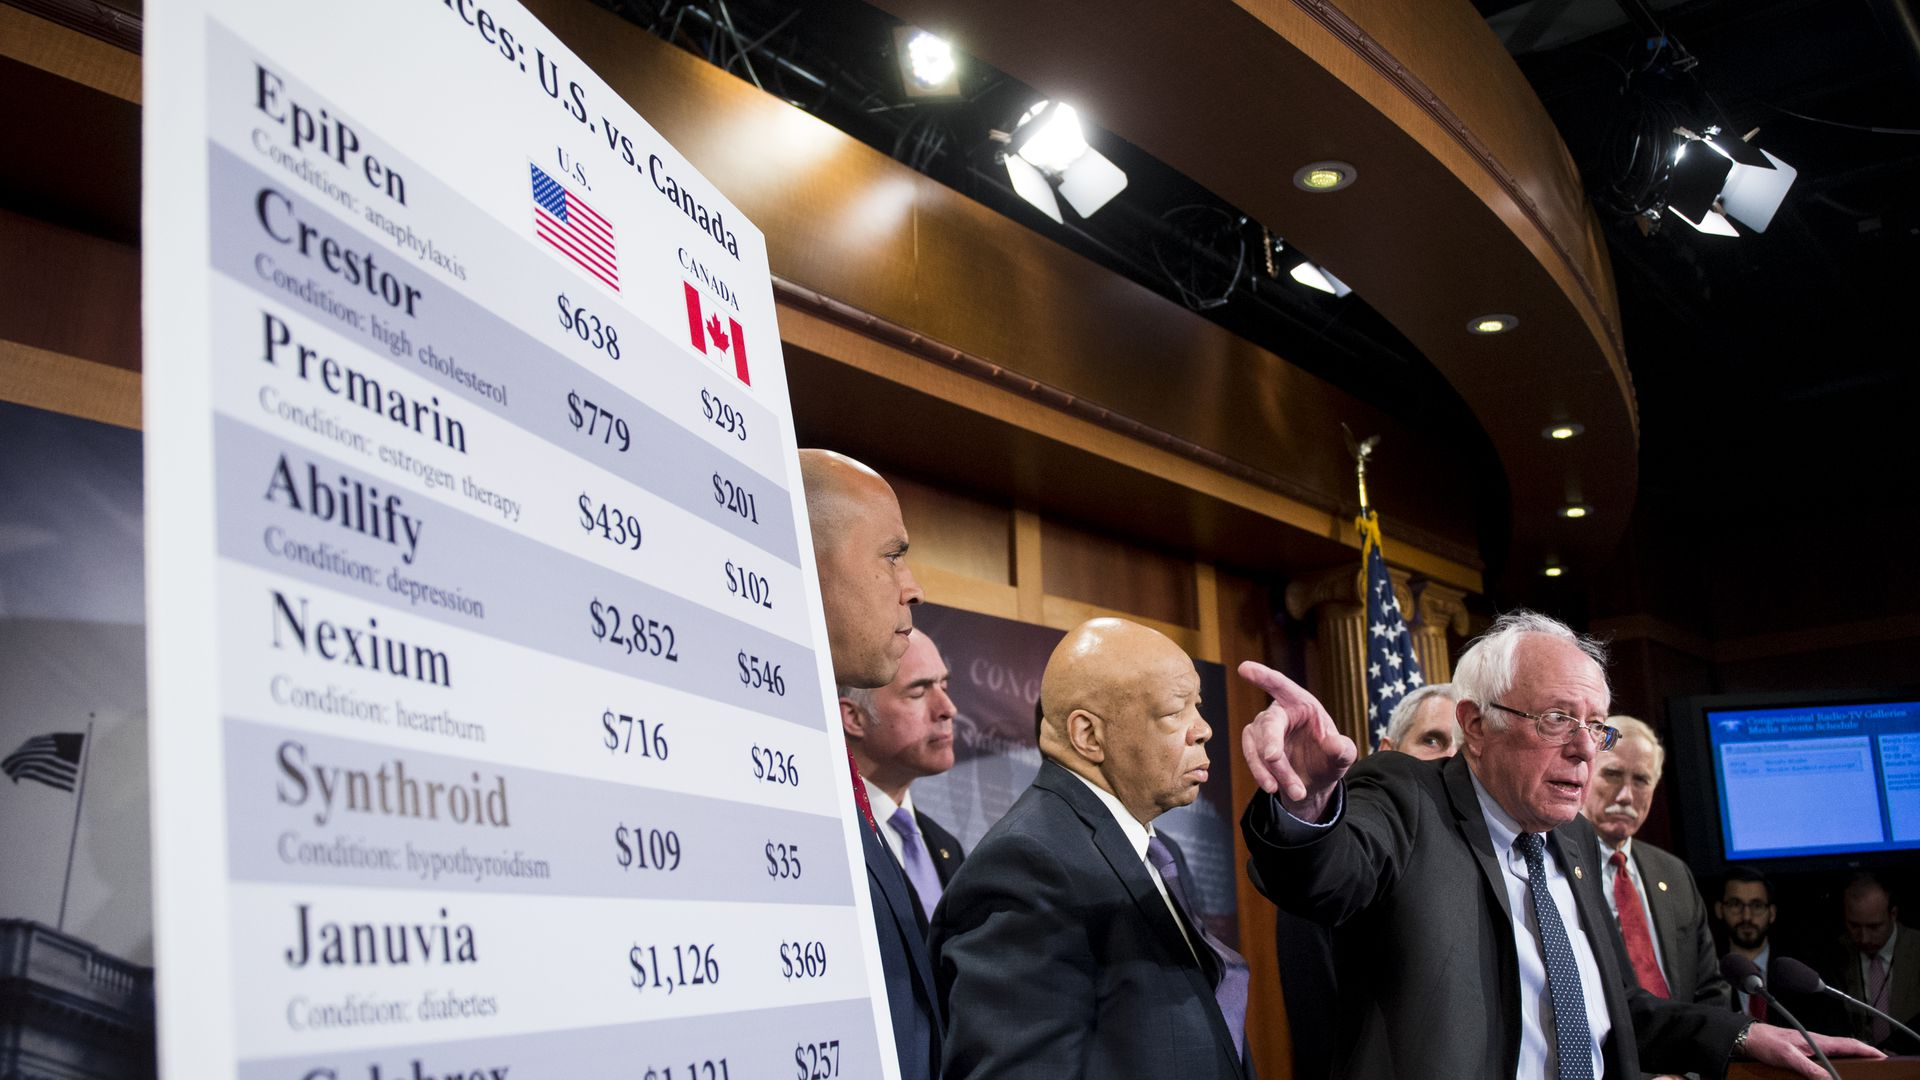 Democratic lawmakers with a chart on drug prices